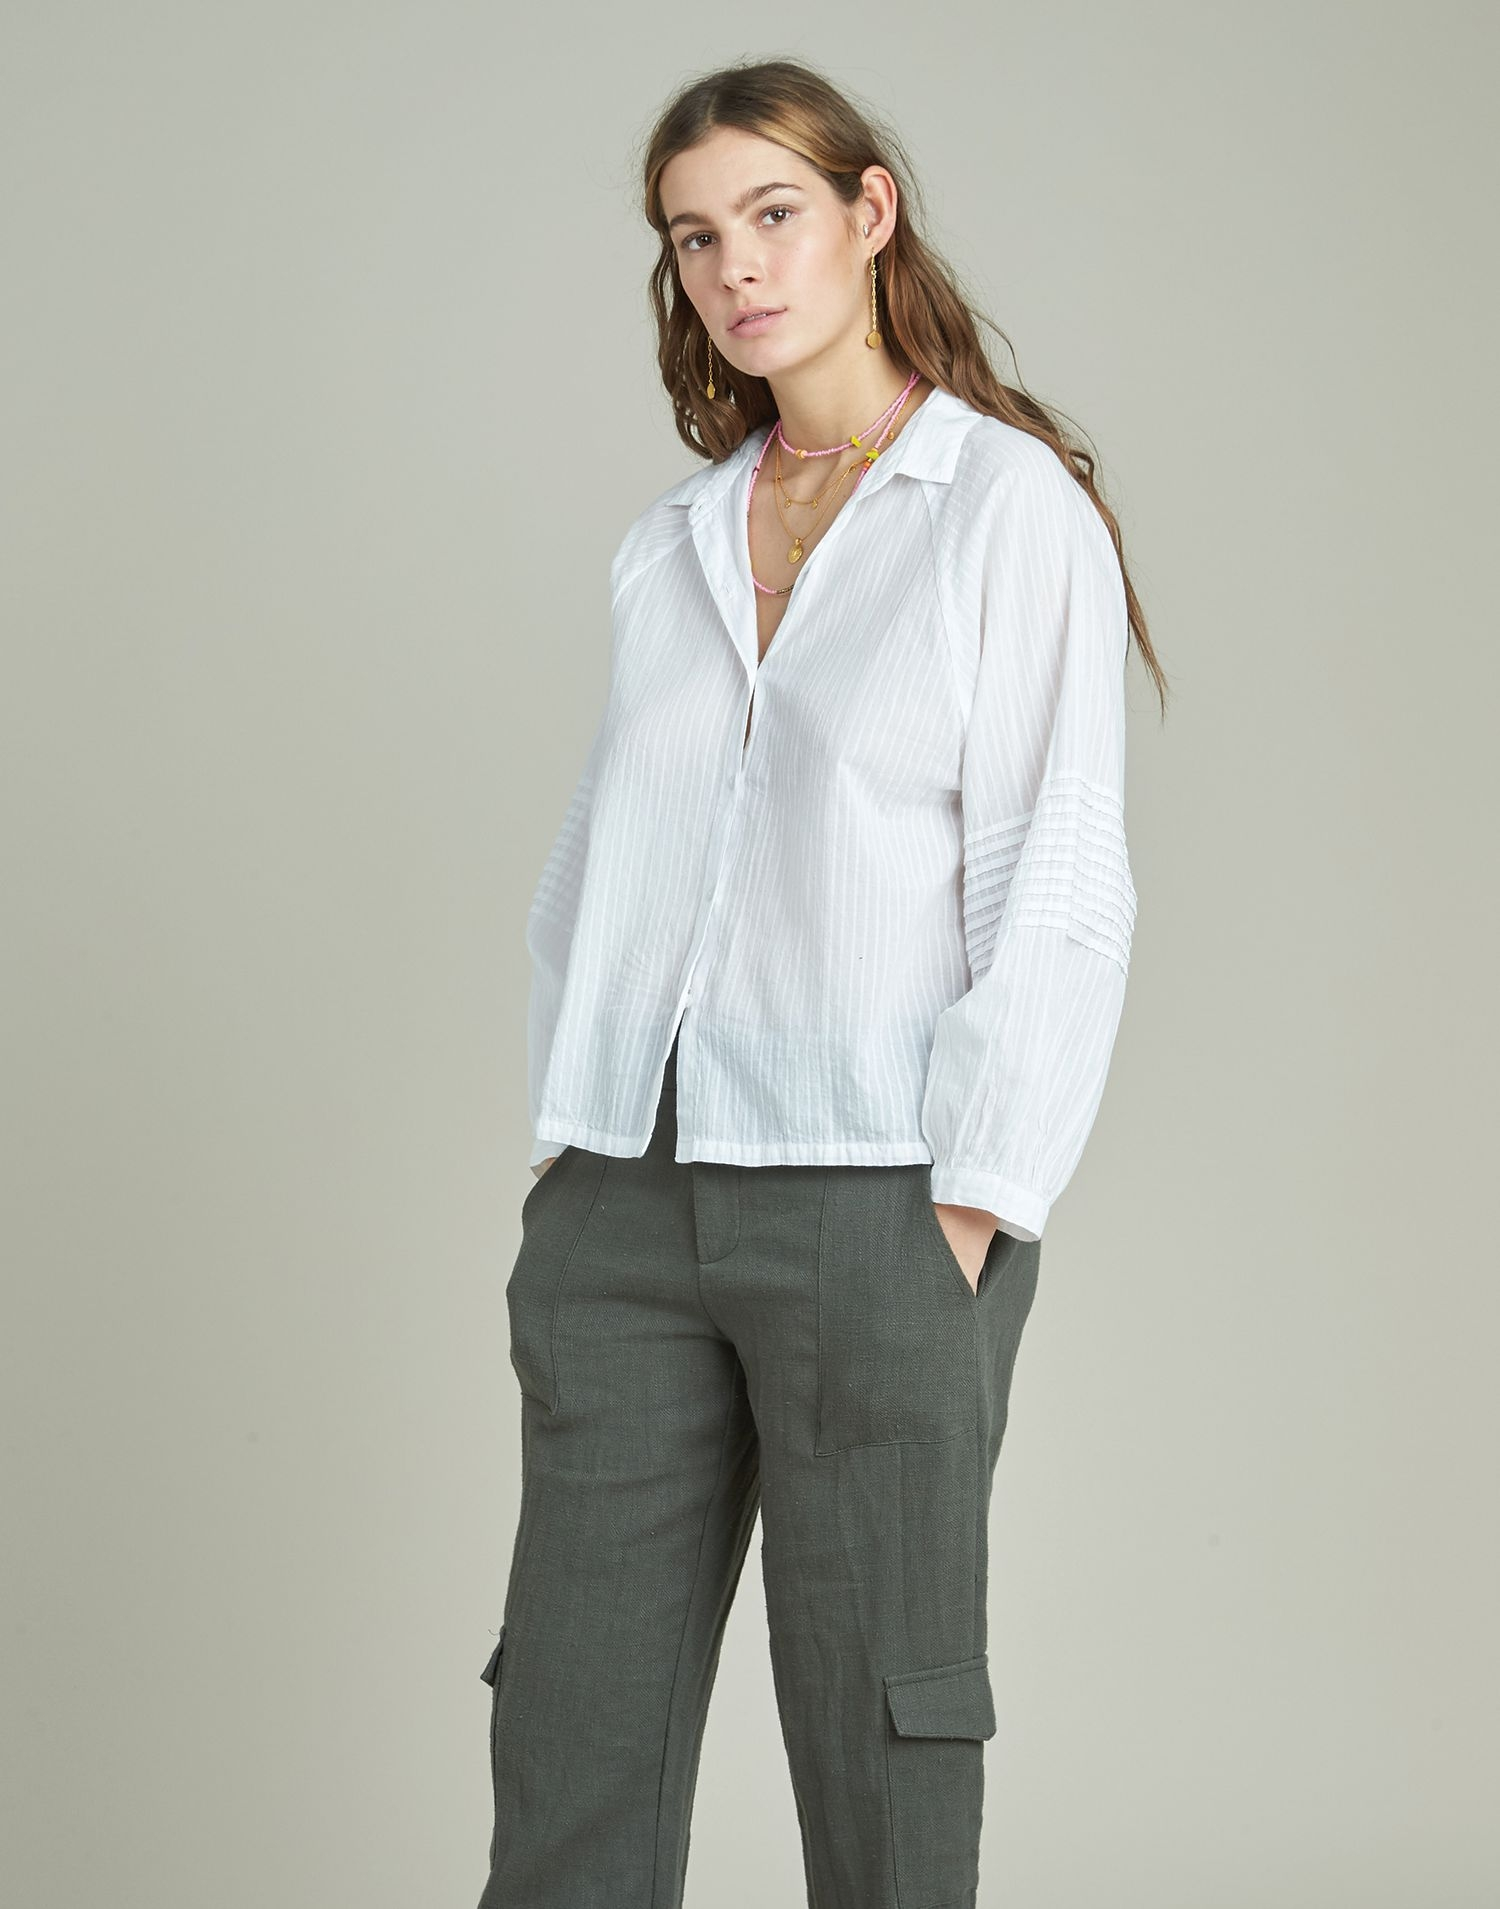 Dobby puffed shirt with pleated sleeves